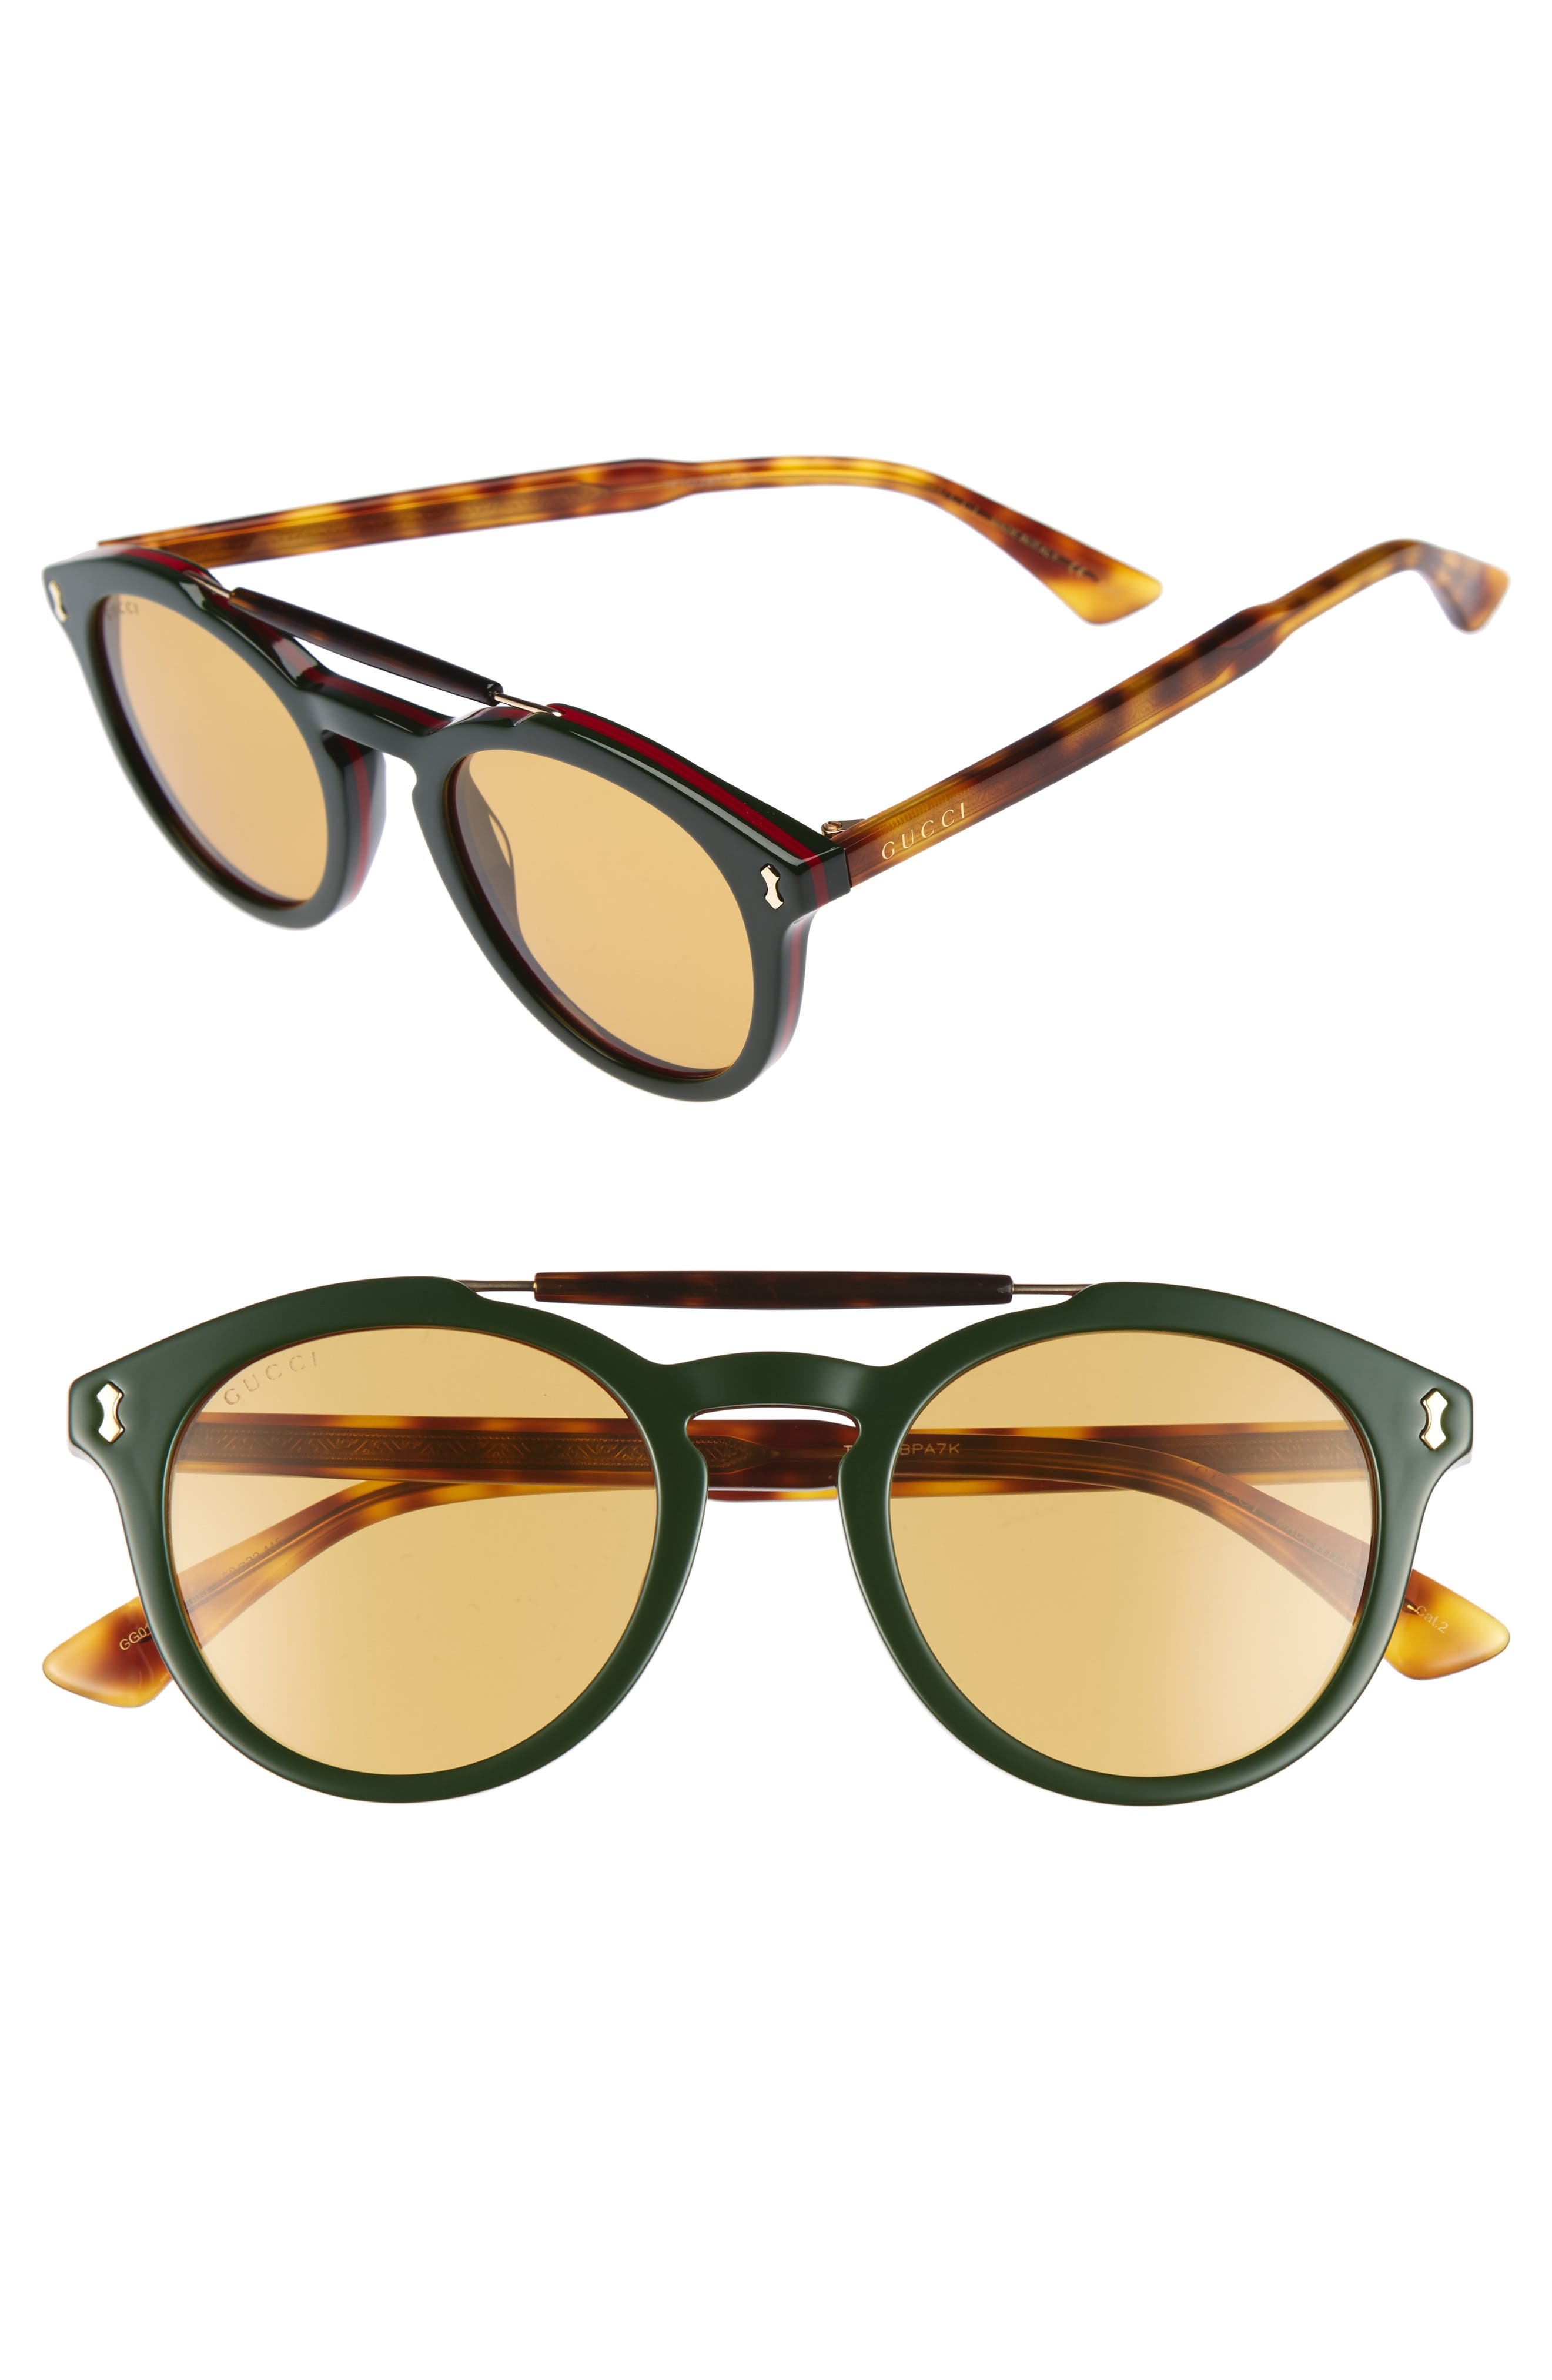 Vintage Pilot 50mm Sunglasses,                             Main thumbnail 1, color,                             Green-Red Web/ Nicotine